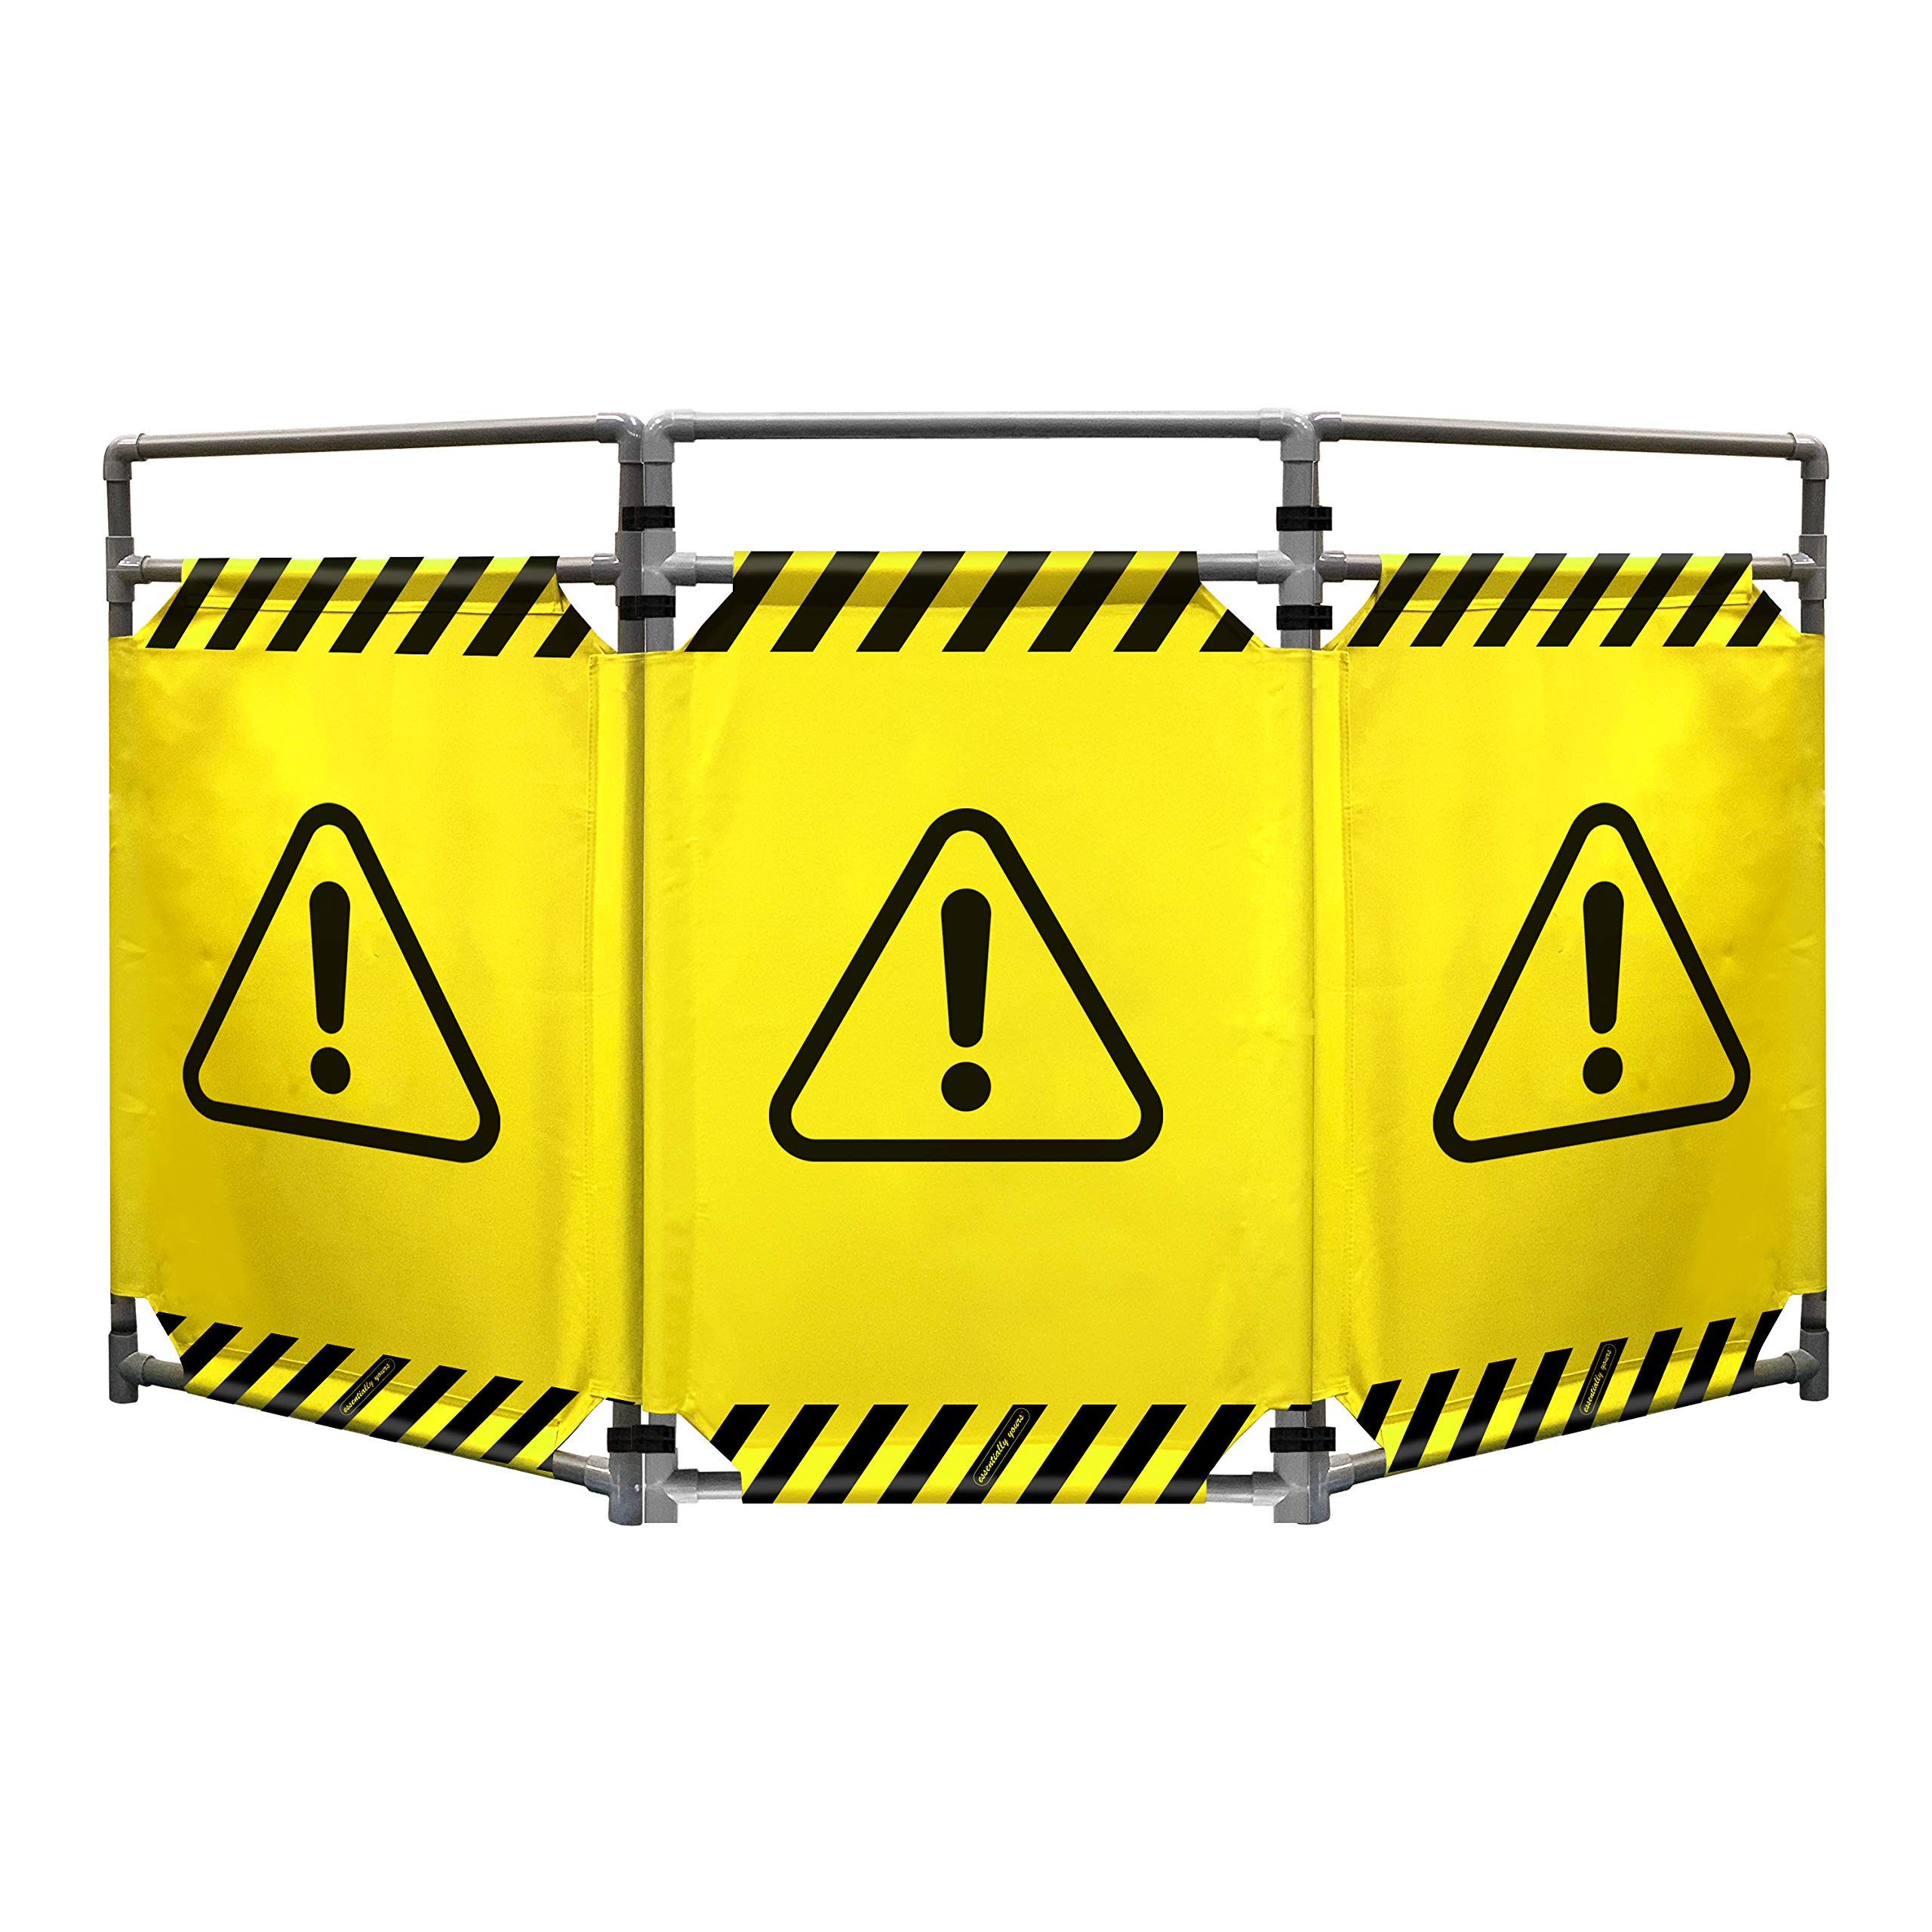 Safety Barricade, High Visibility 3 Panel Portable Safety Barrier with PVC Frame, Foldable, Lightweight, and Durable, Caution Symbol by Essentially Yours